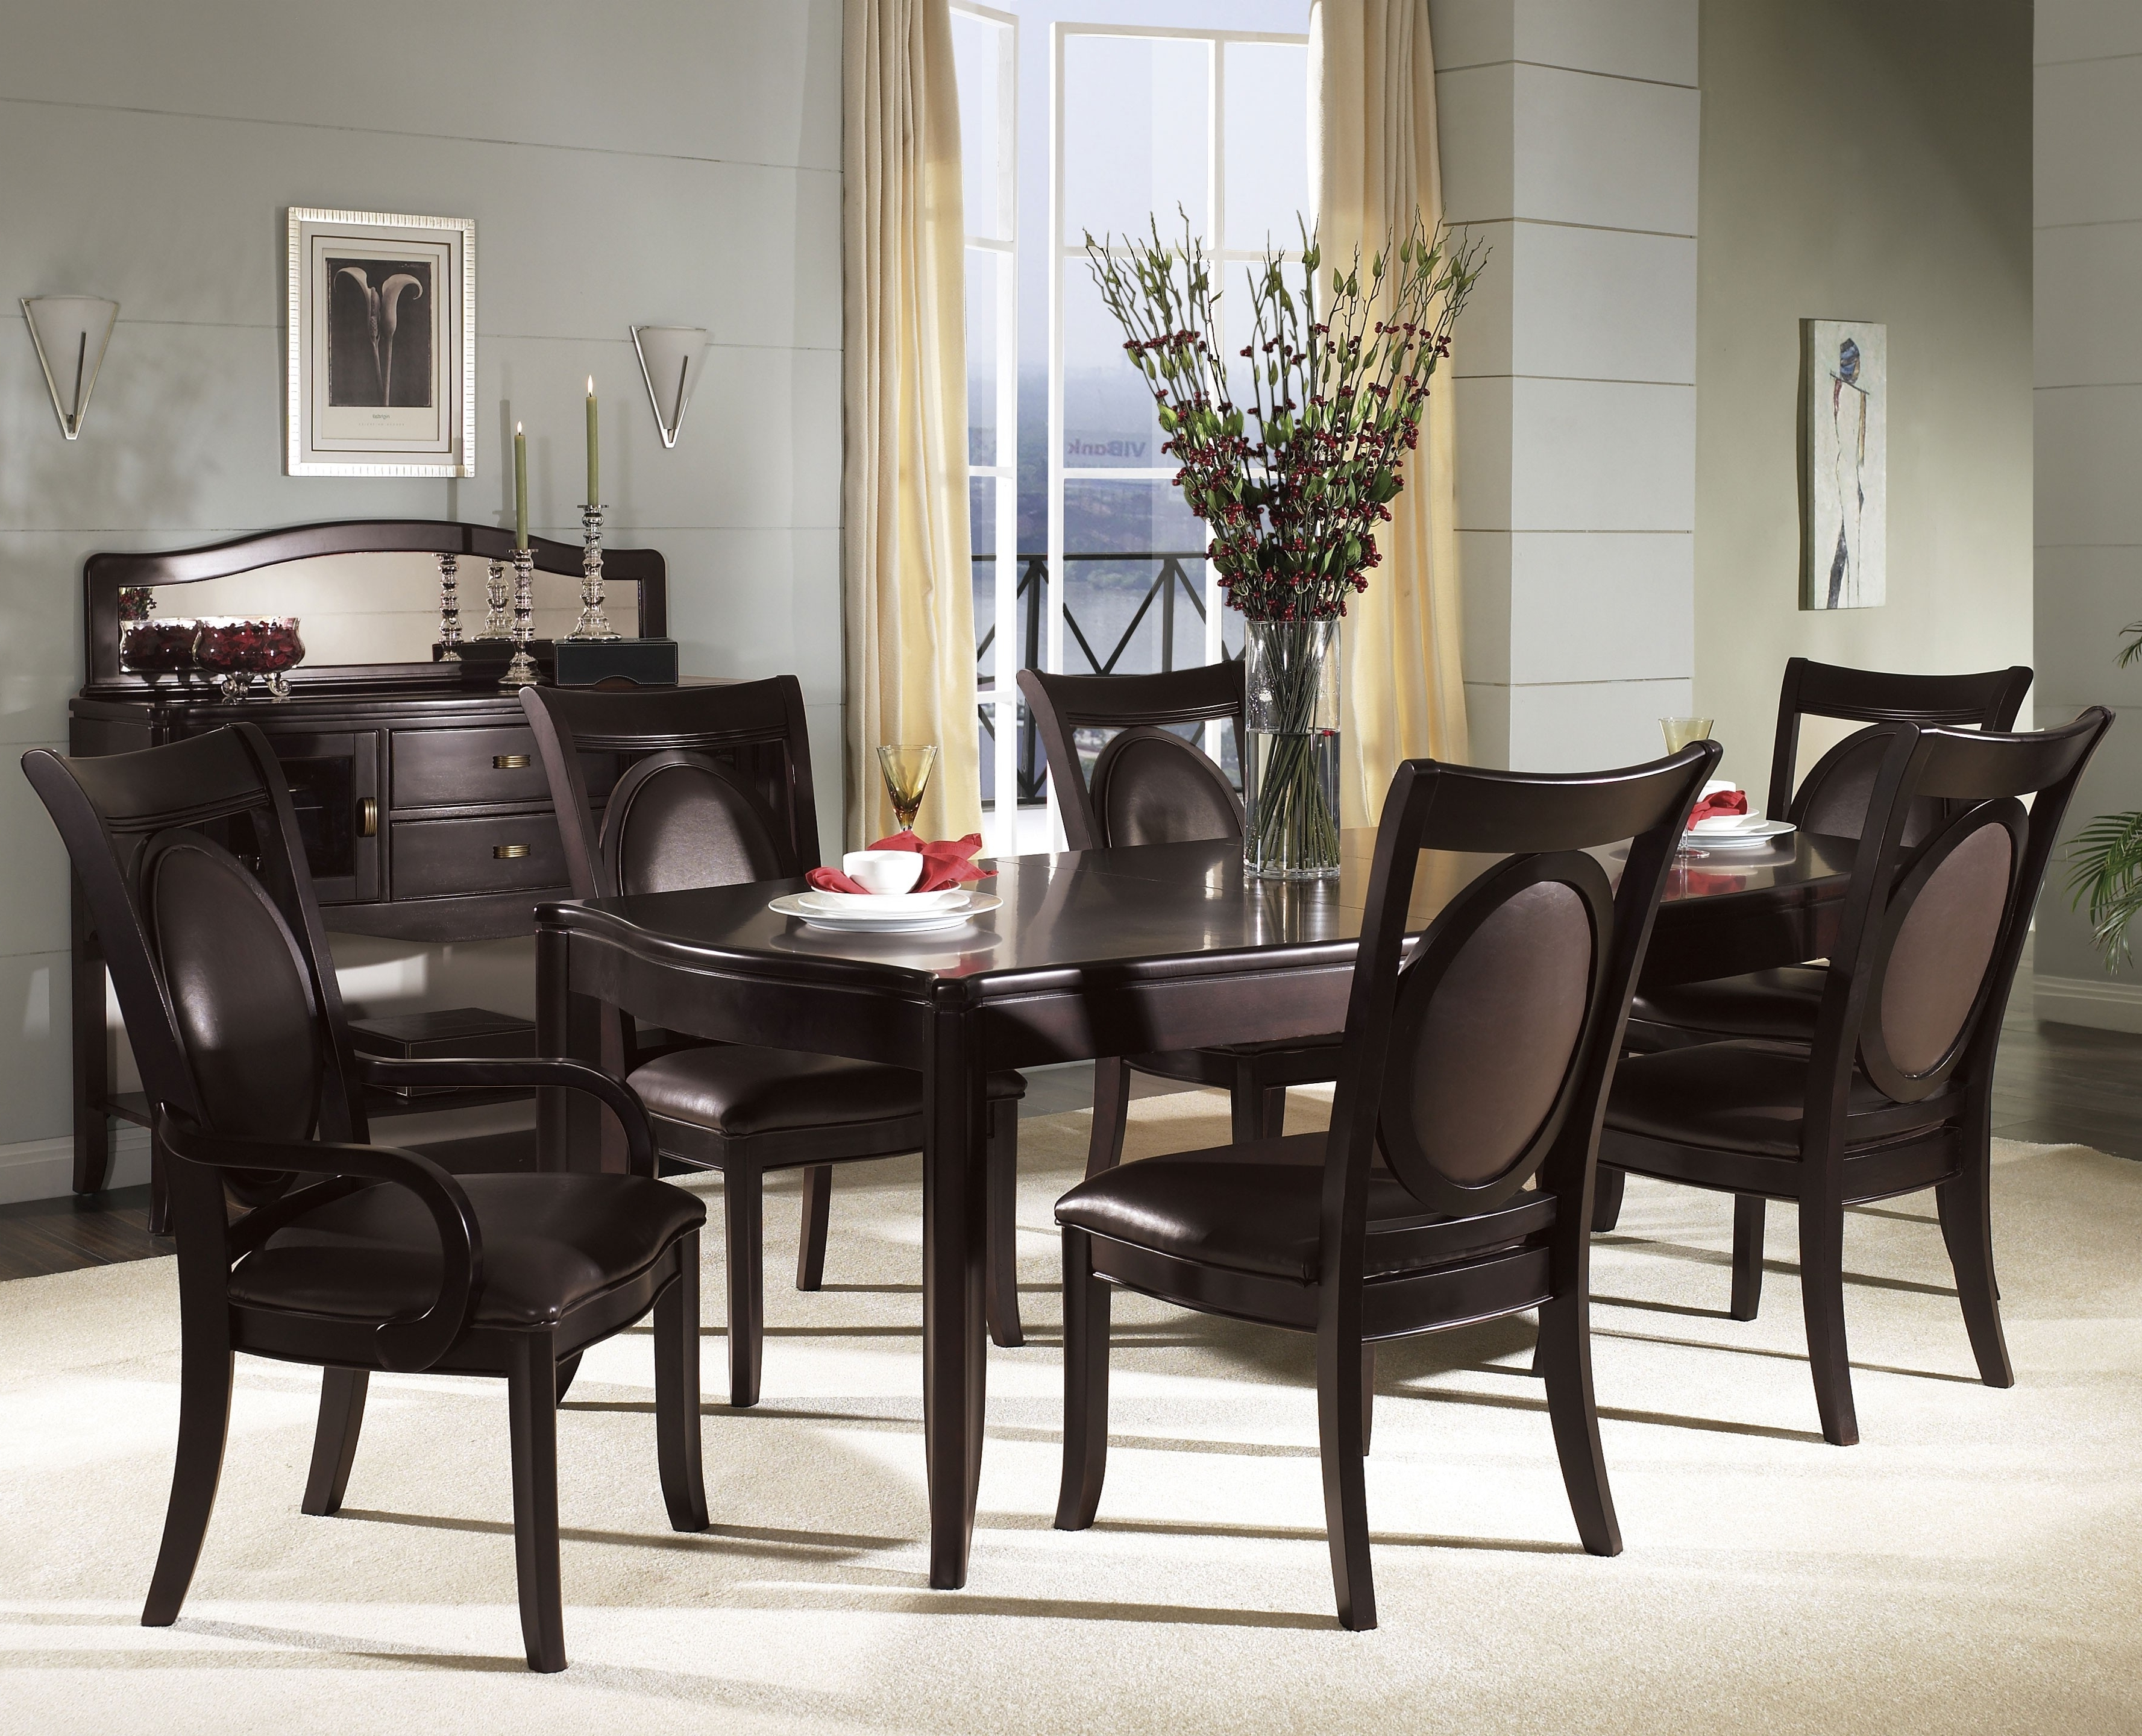 Dining Table And 8 Chairs For Sale Elegant Excellent Elegant Dining in Newest Dining Tables And 8 Chairs For Sale